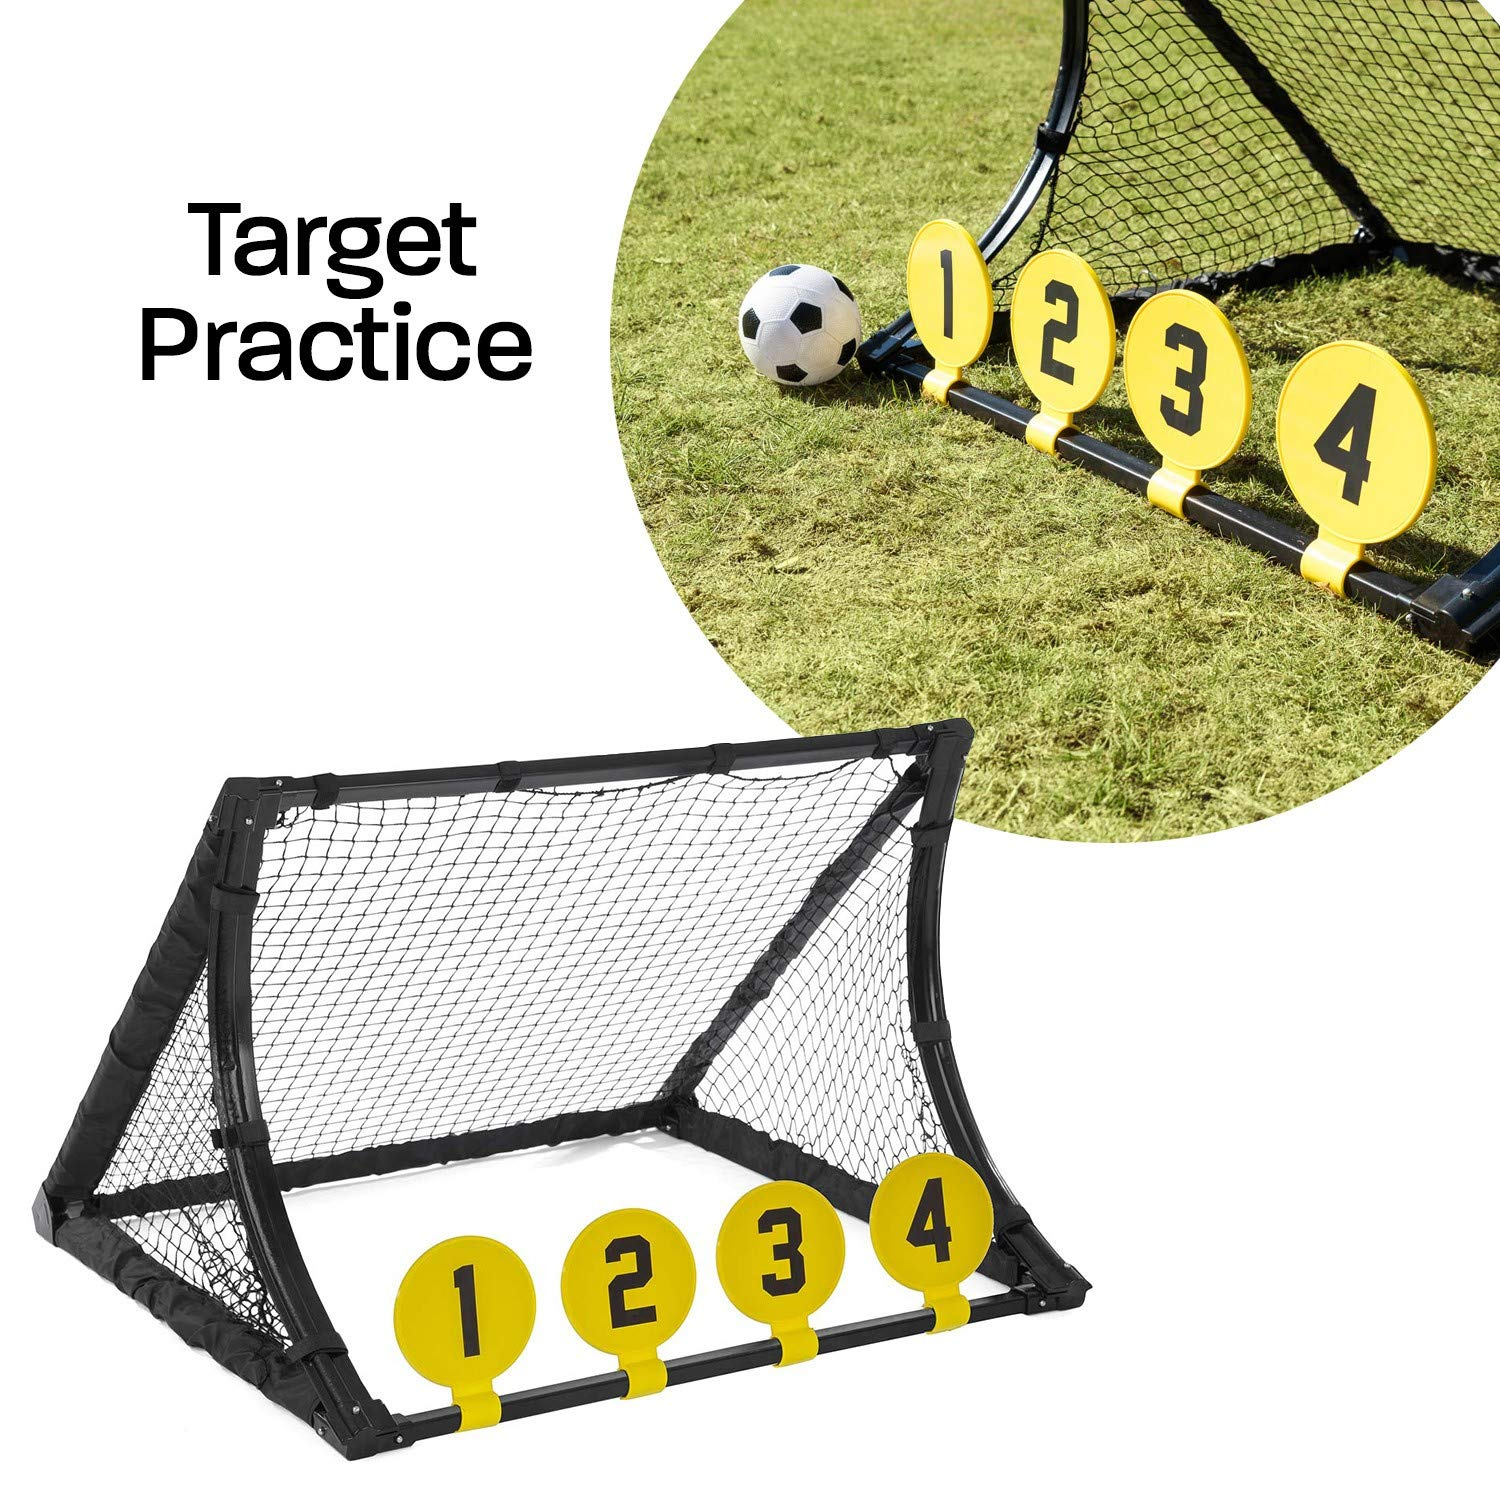 d212f0d3 JumpStar Sports Football Training System Goal Kids 4 In 1 Target Shot  Rebound Kickback Net Toy